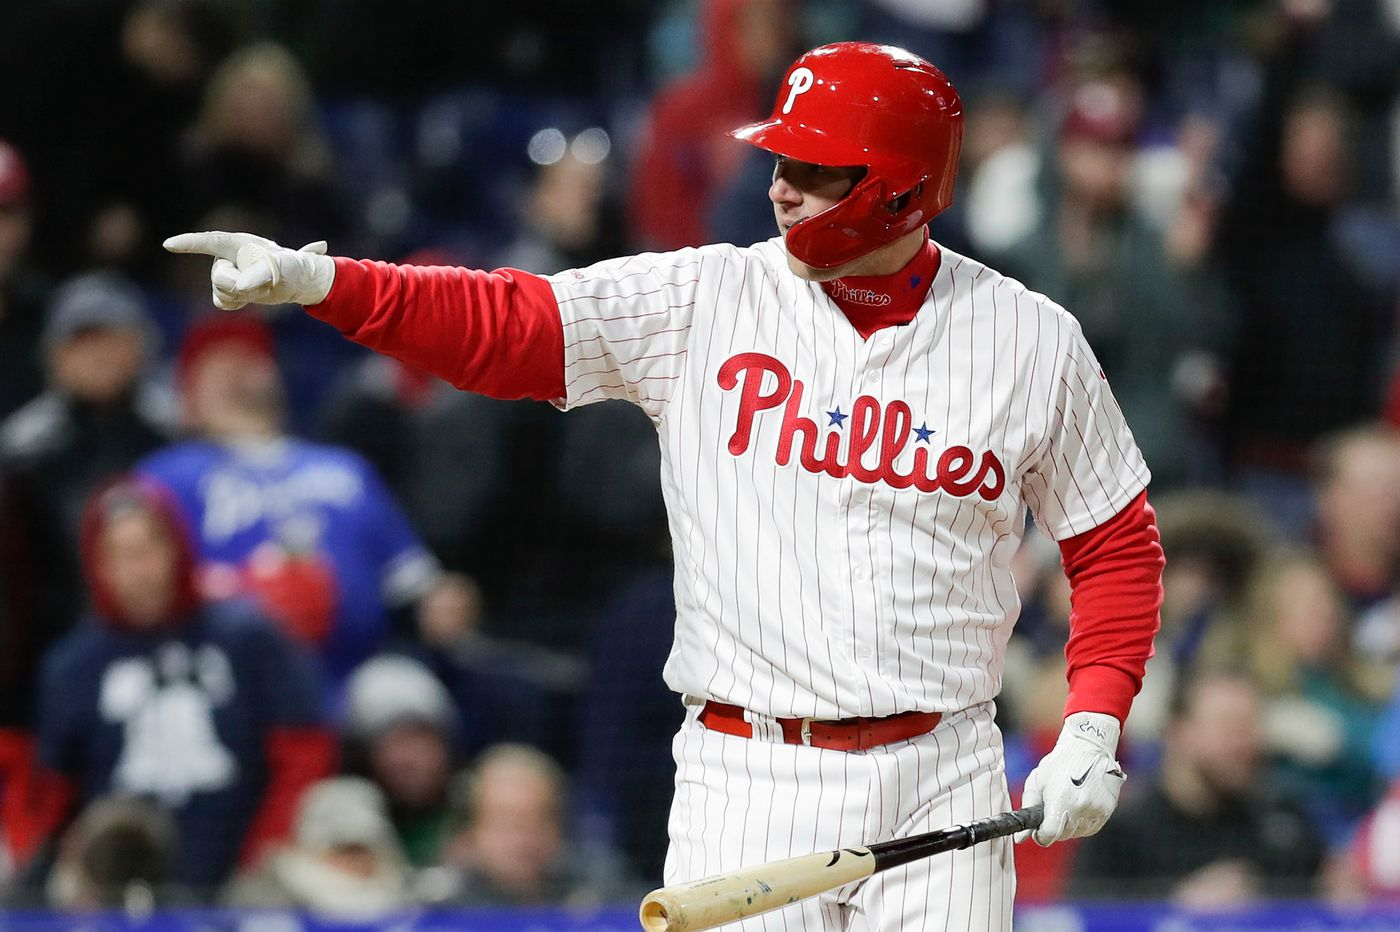 Unbeaten Phillies stake claim as best team in baseball | Extra Innings